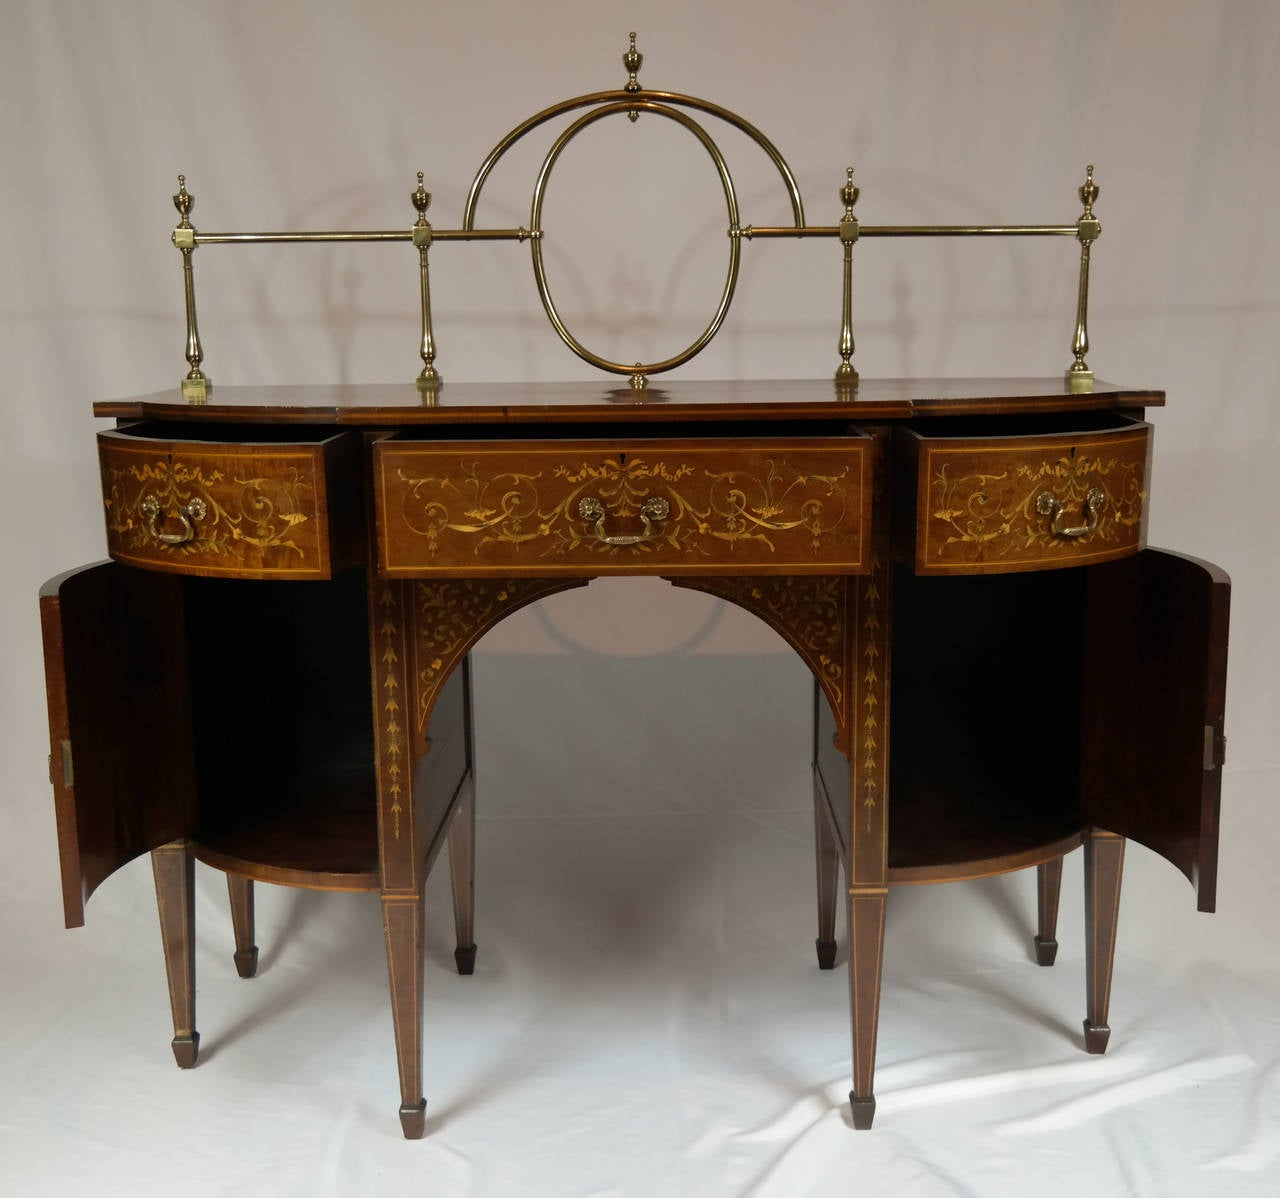 Highly Important Edwards and Roberts Bowfront Sideboard